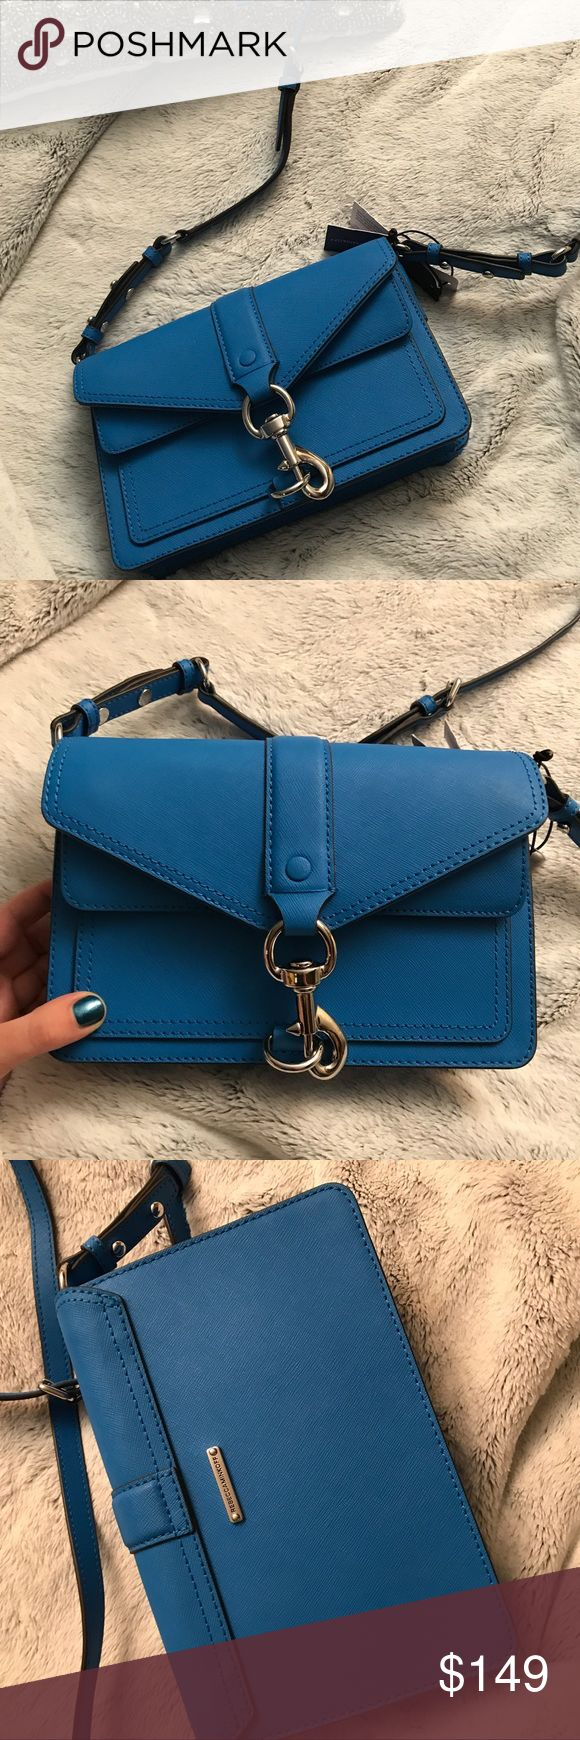 SALE: NWT Rebecca Minkoff Crossbody Bag $275 originally. Gorgeous brand new cobalt blue bag! Guaranteed authentic. Rebecca Minkoff Bags Crossbody Bags